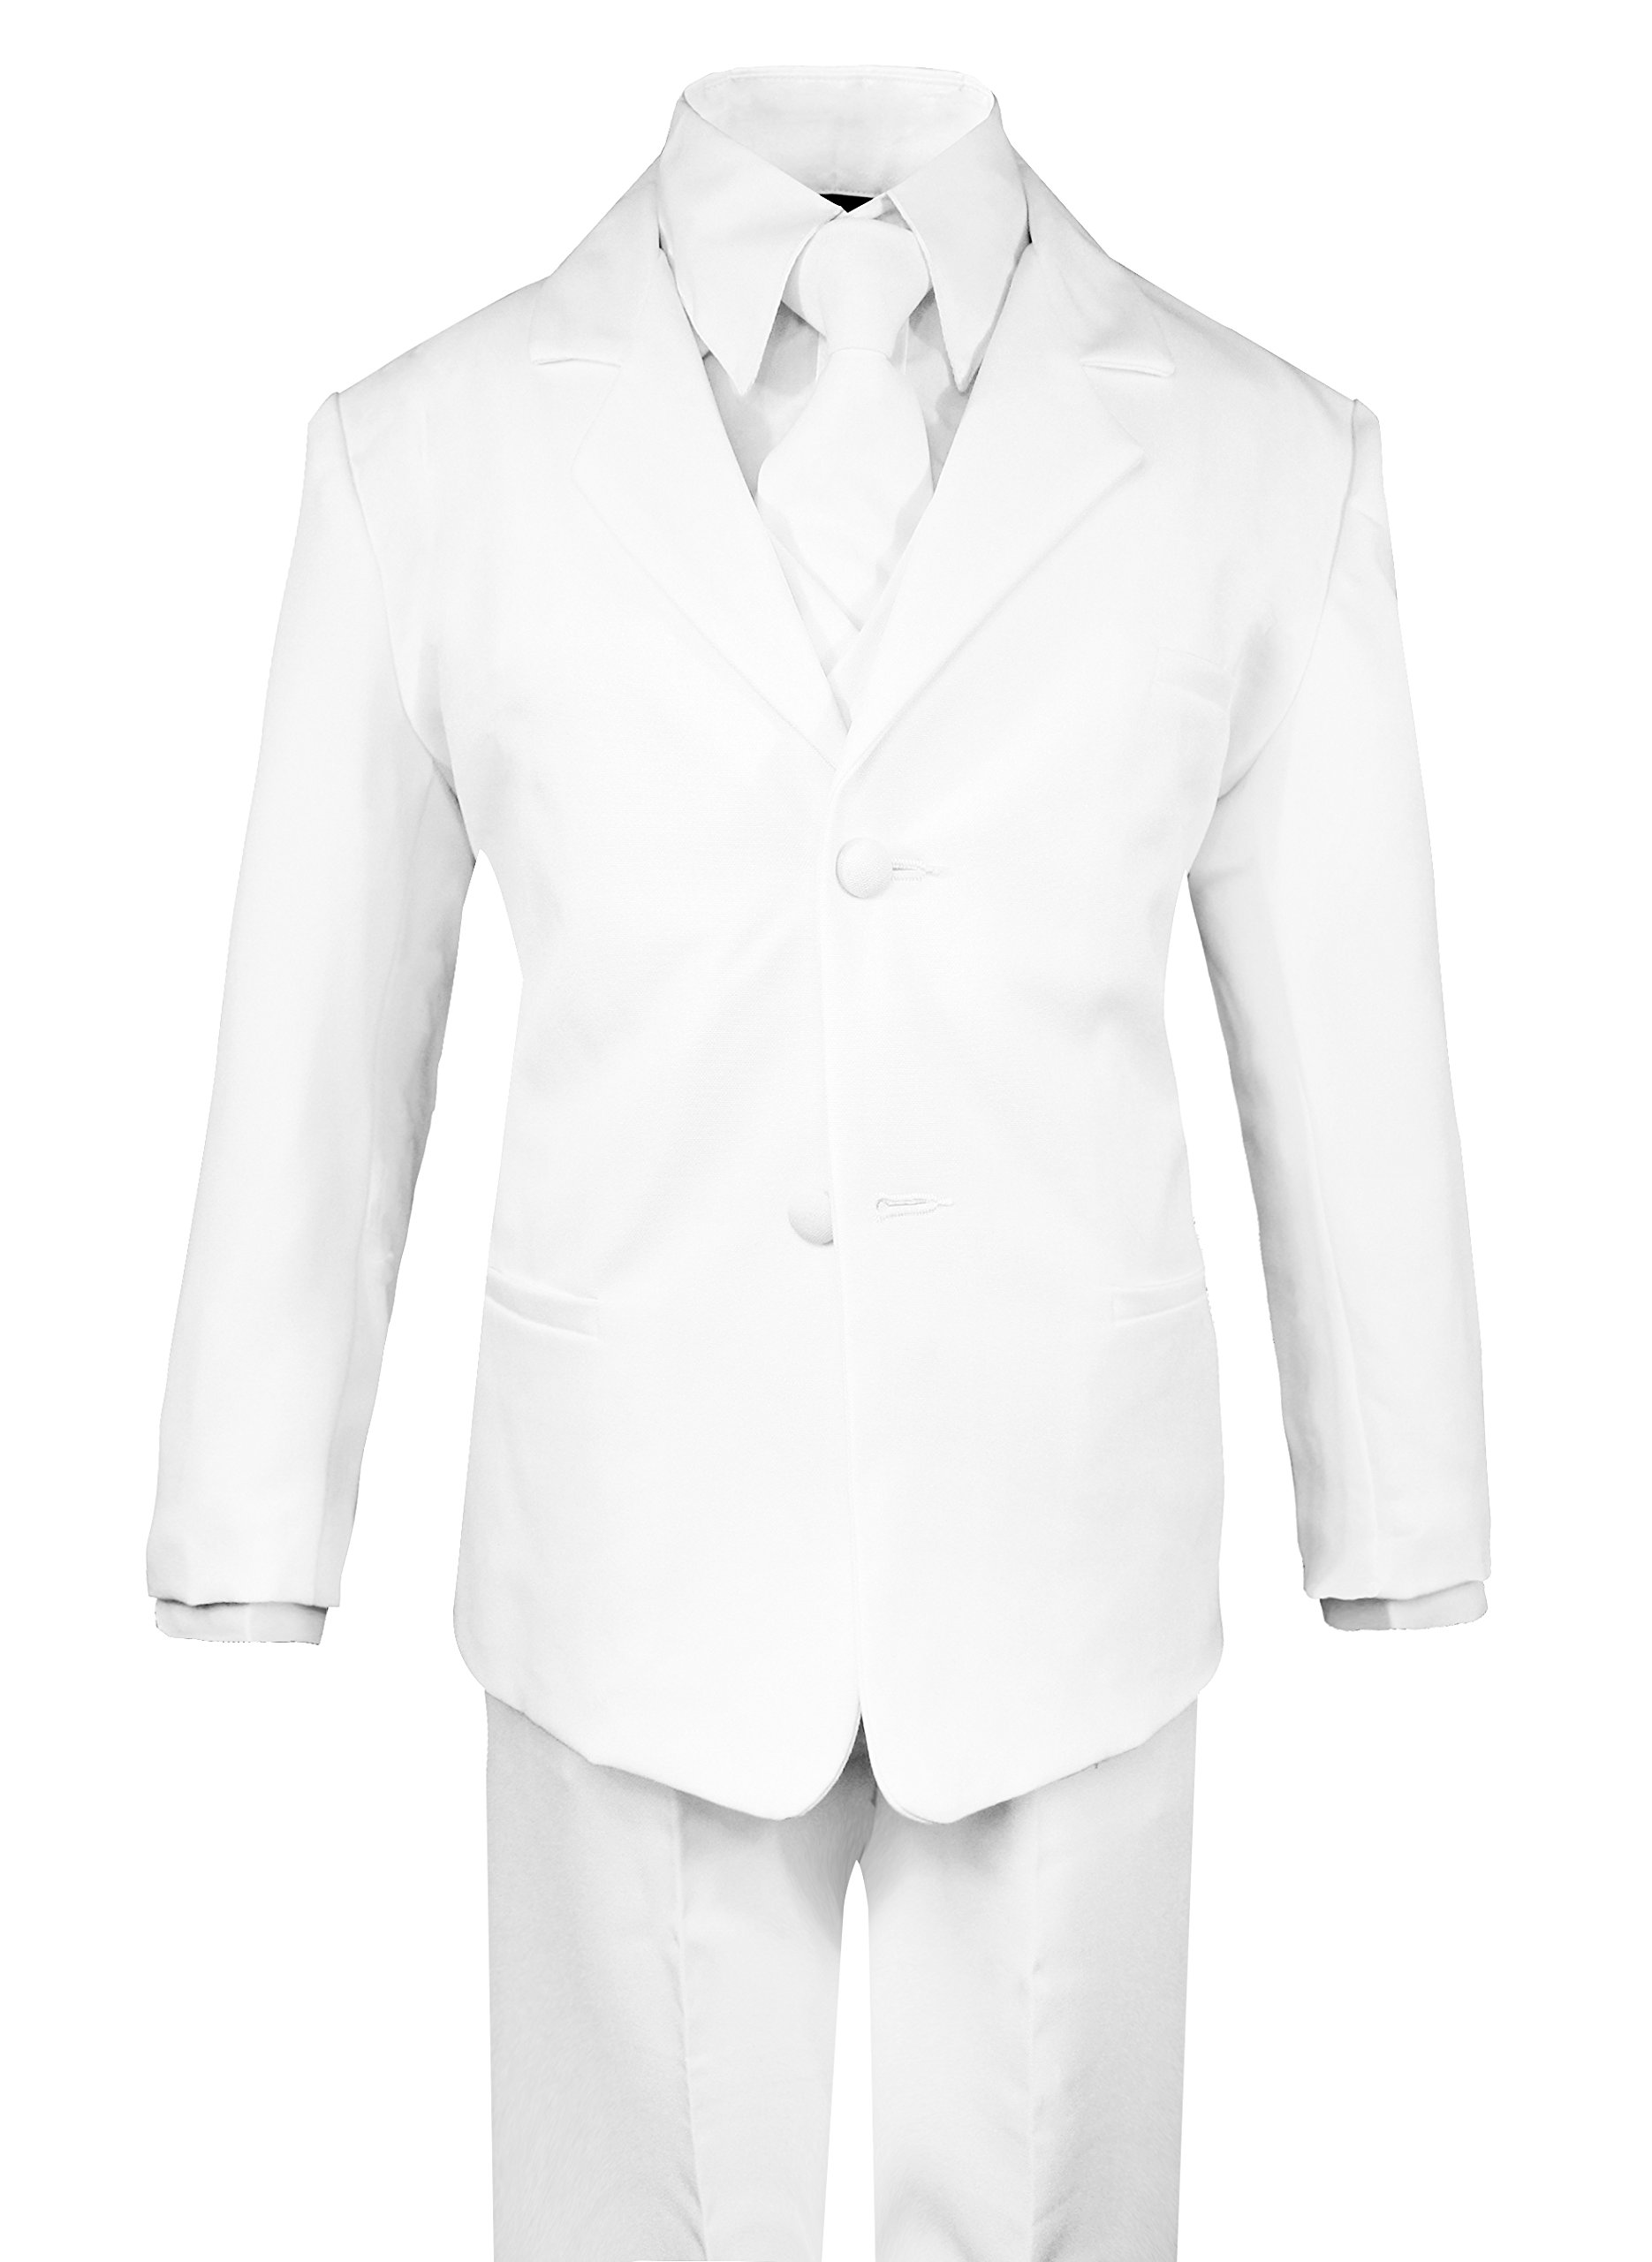 67bb2105e0e Galleon - Luca Gabriel Toddler Boys  5 Piece Classic Fit No Tail Formal  White Dress Suit Set With Tie And Vest - Size 7